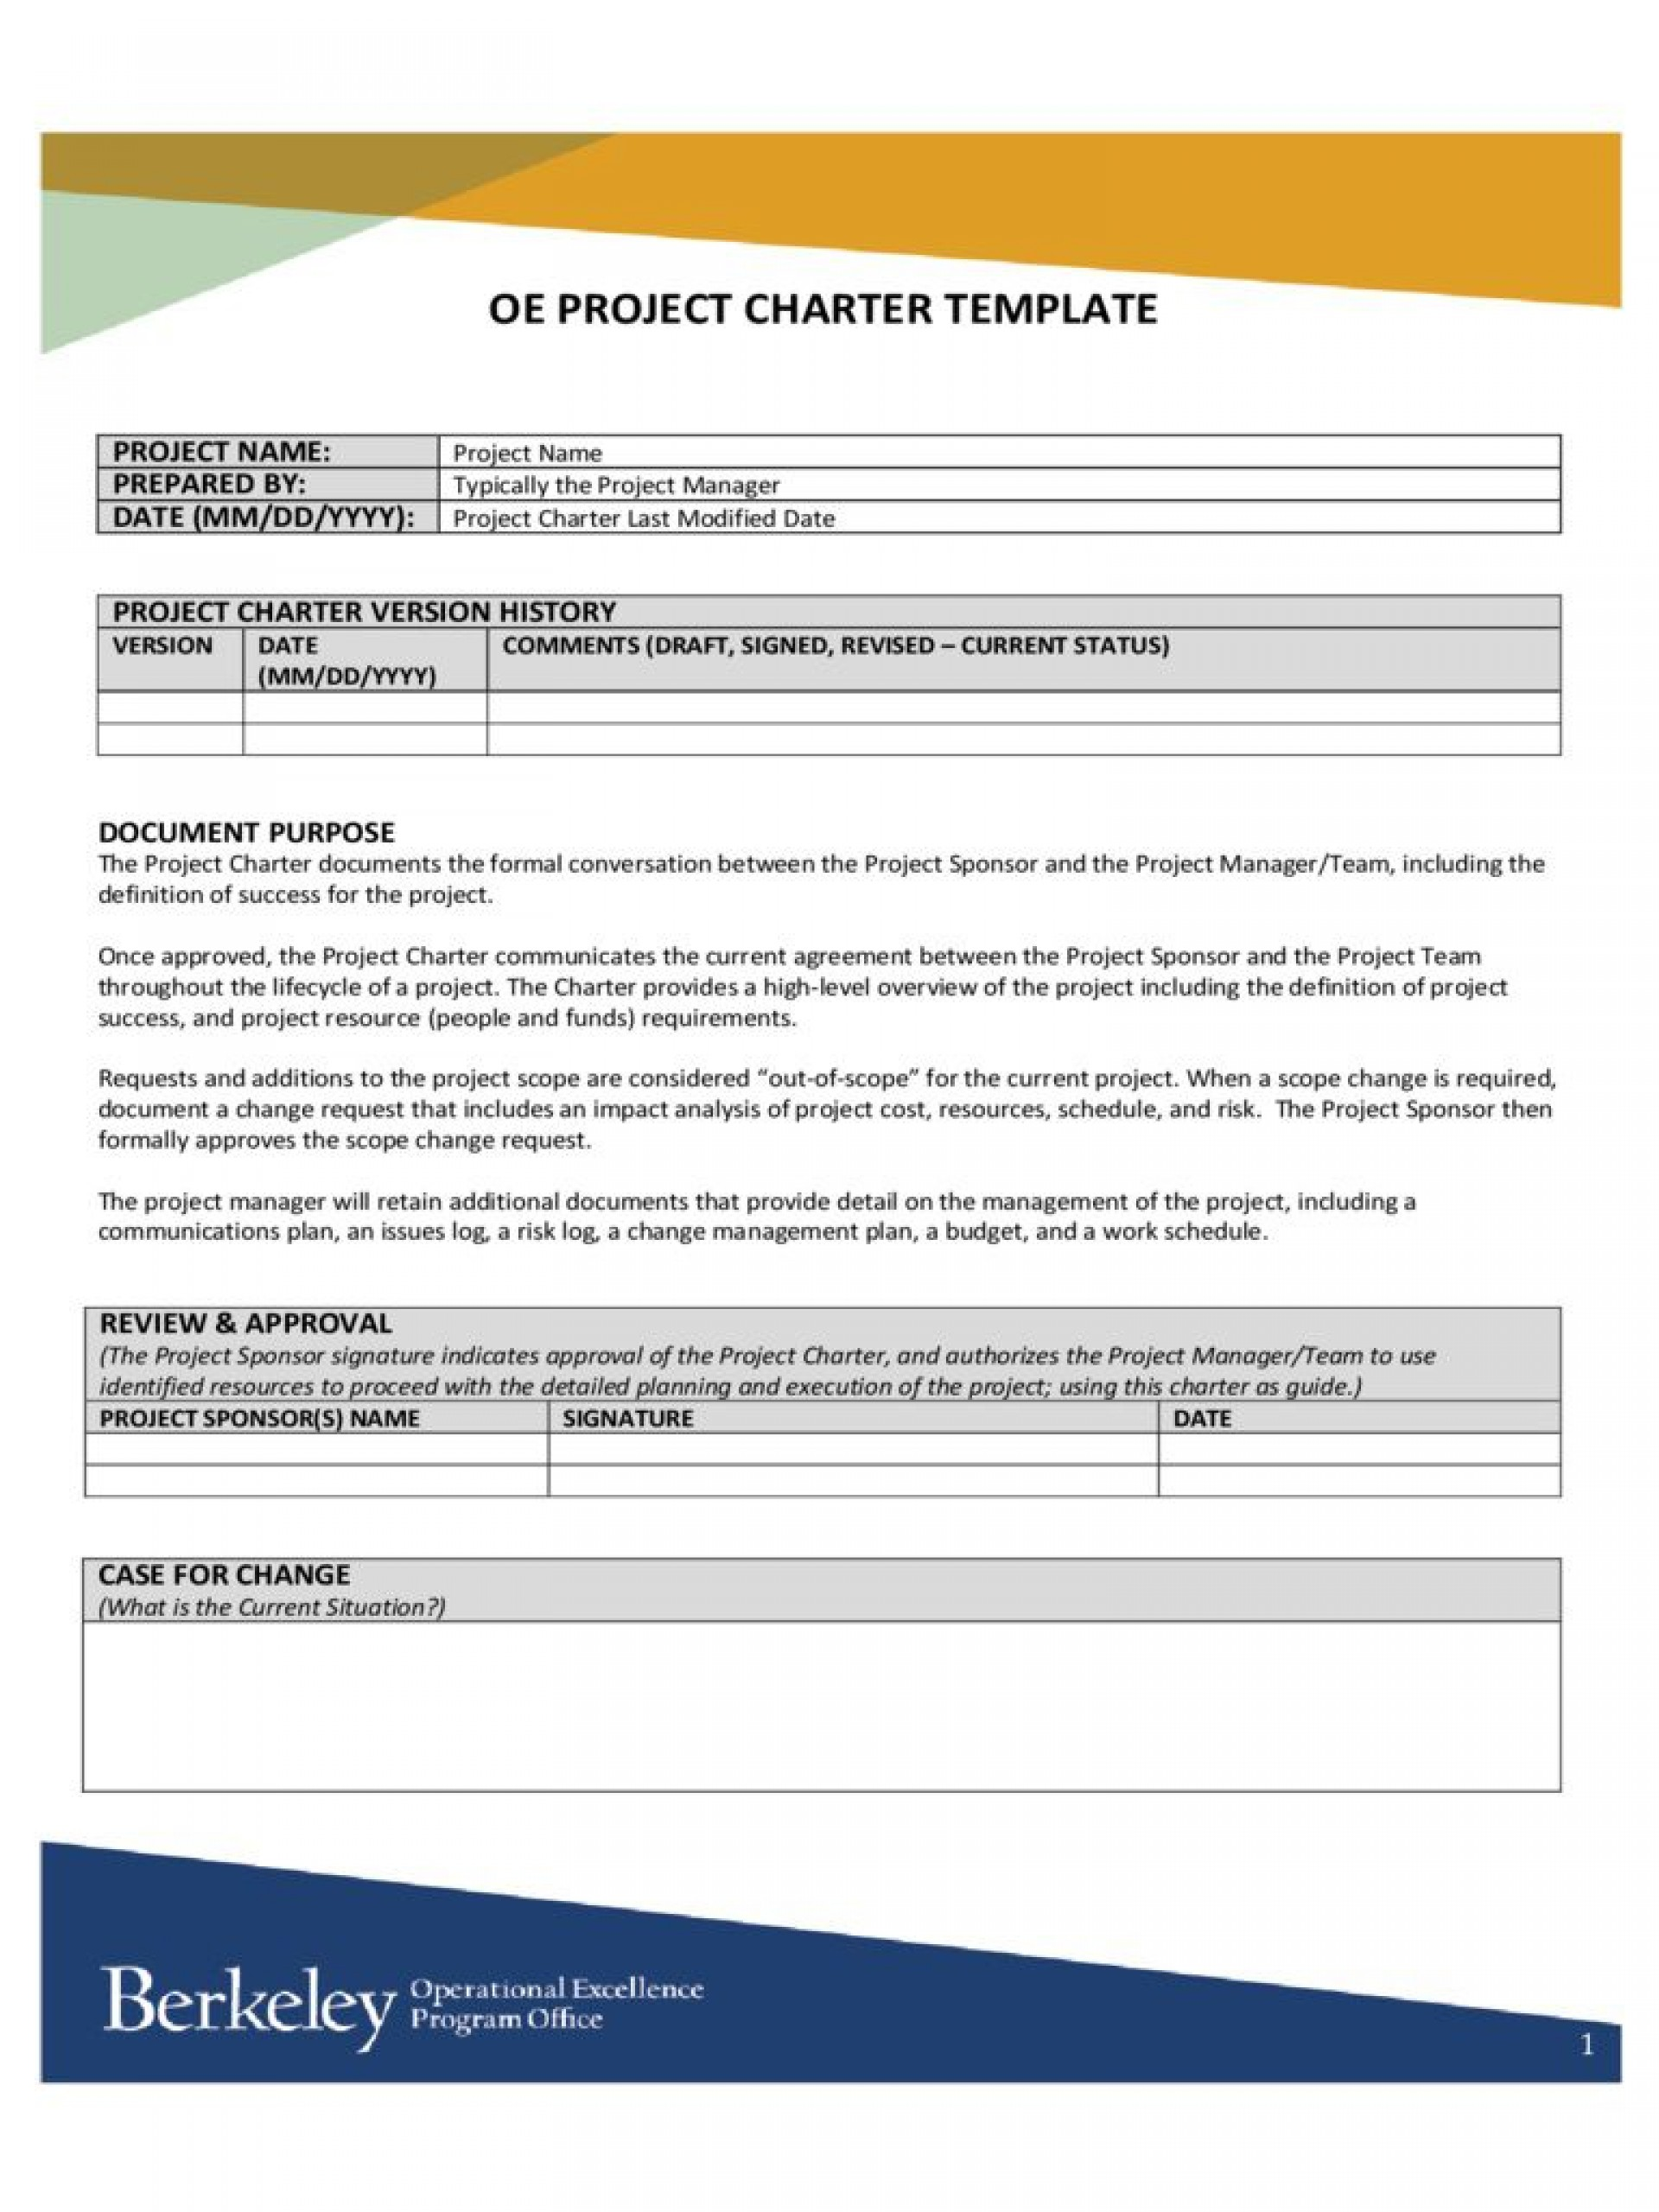 005 Wonderful Project Charter Template Excel Highest Clarity  Lean Pmbok Nederland1920